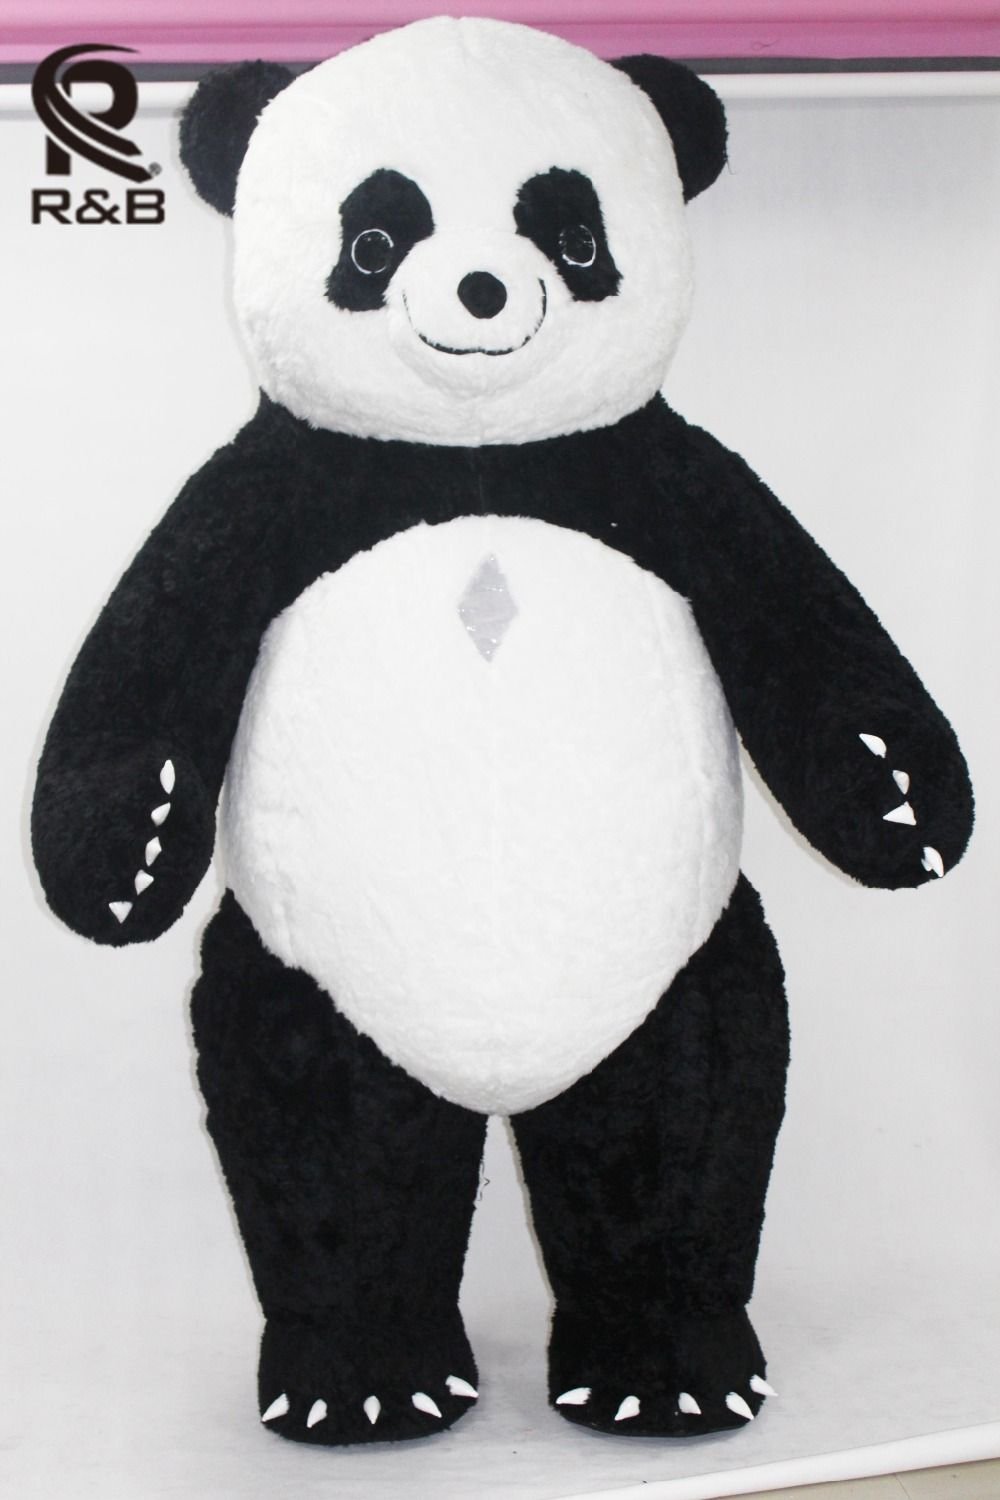 New Style Inflatable Panda Costume Inflatable Panda For Advertising 3M Tall Customize For Adult Suitable For 1.7m To 1.85m Adult